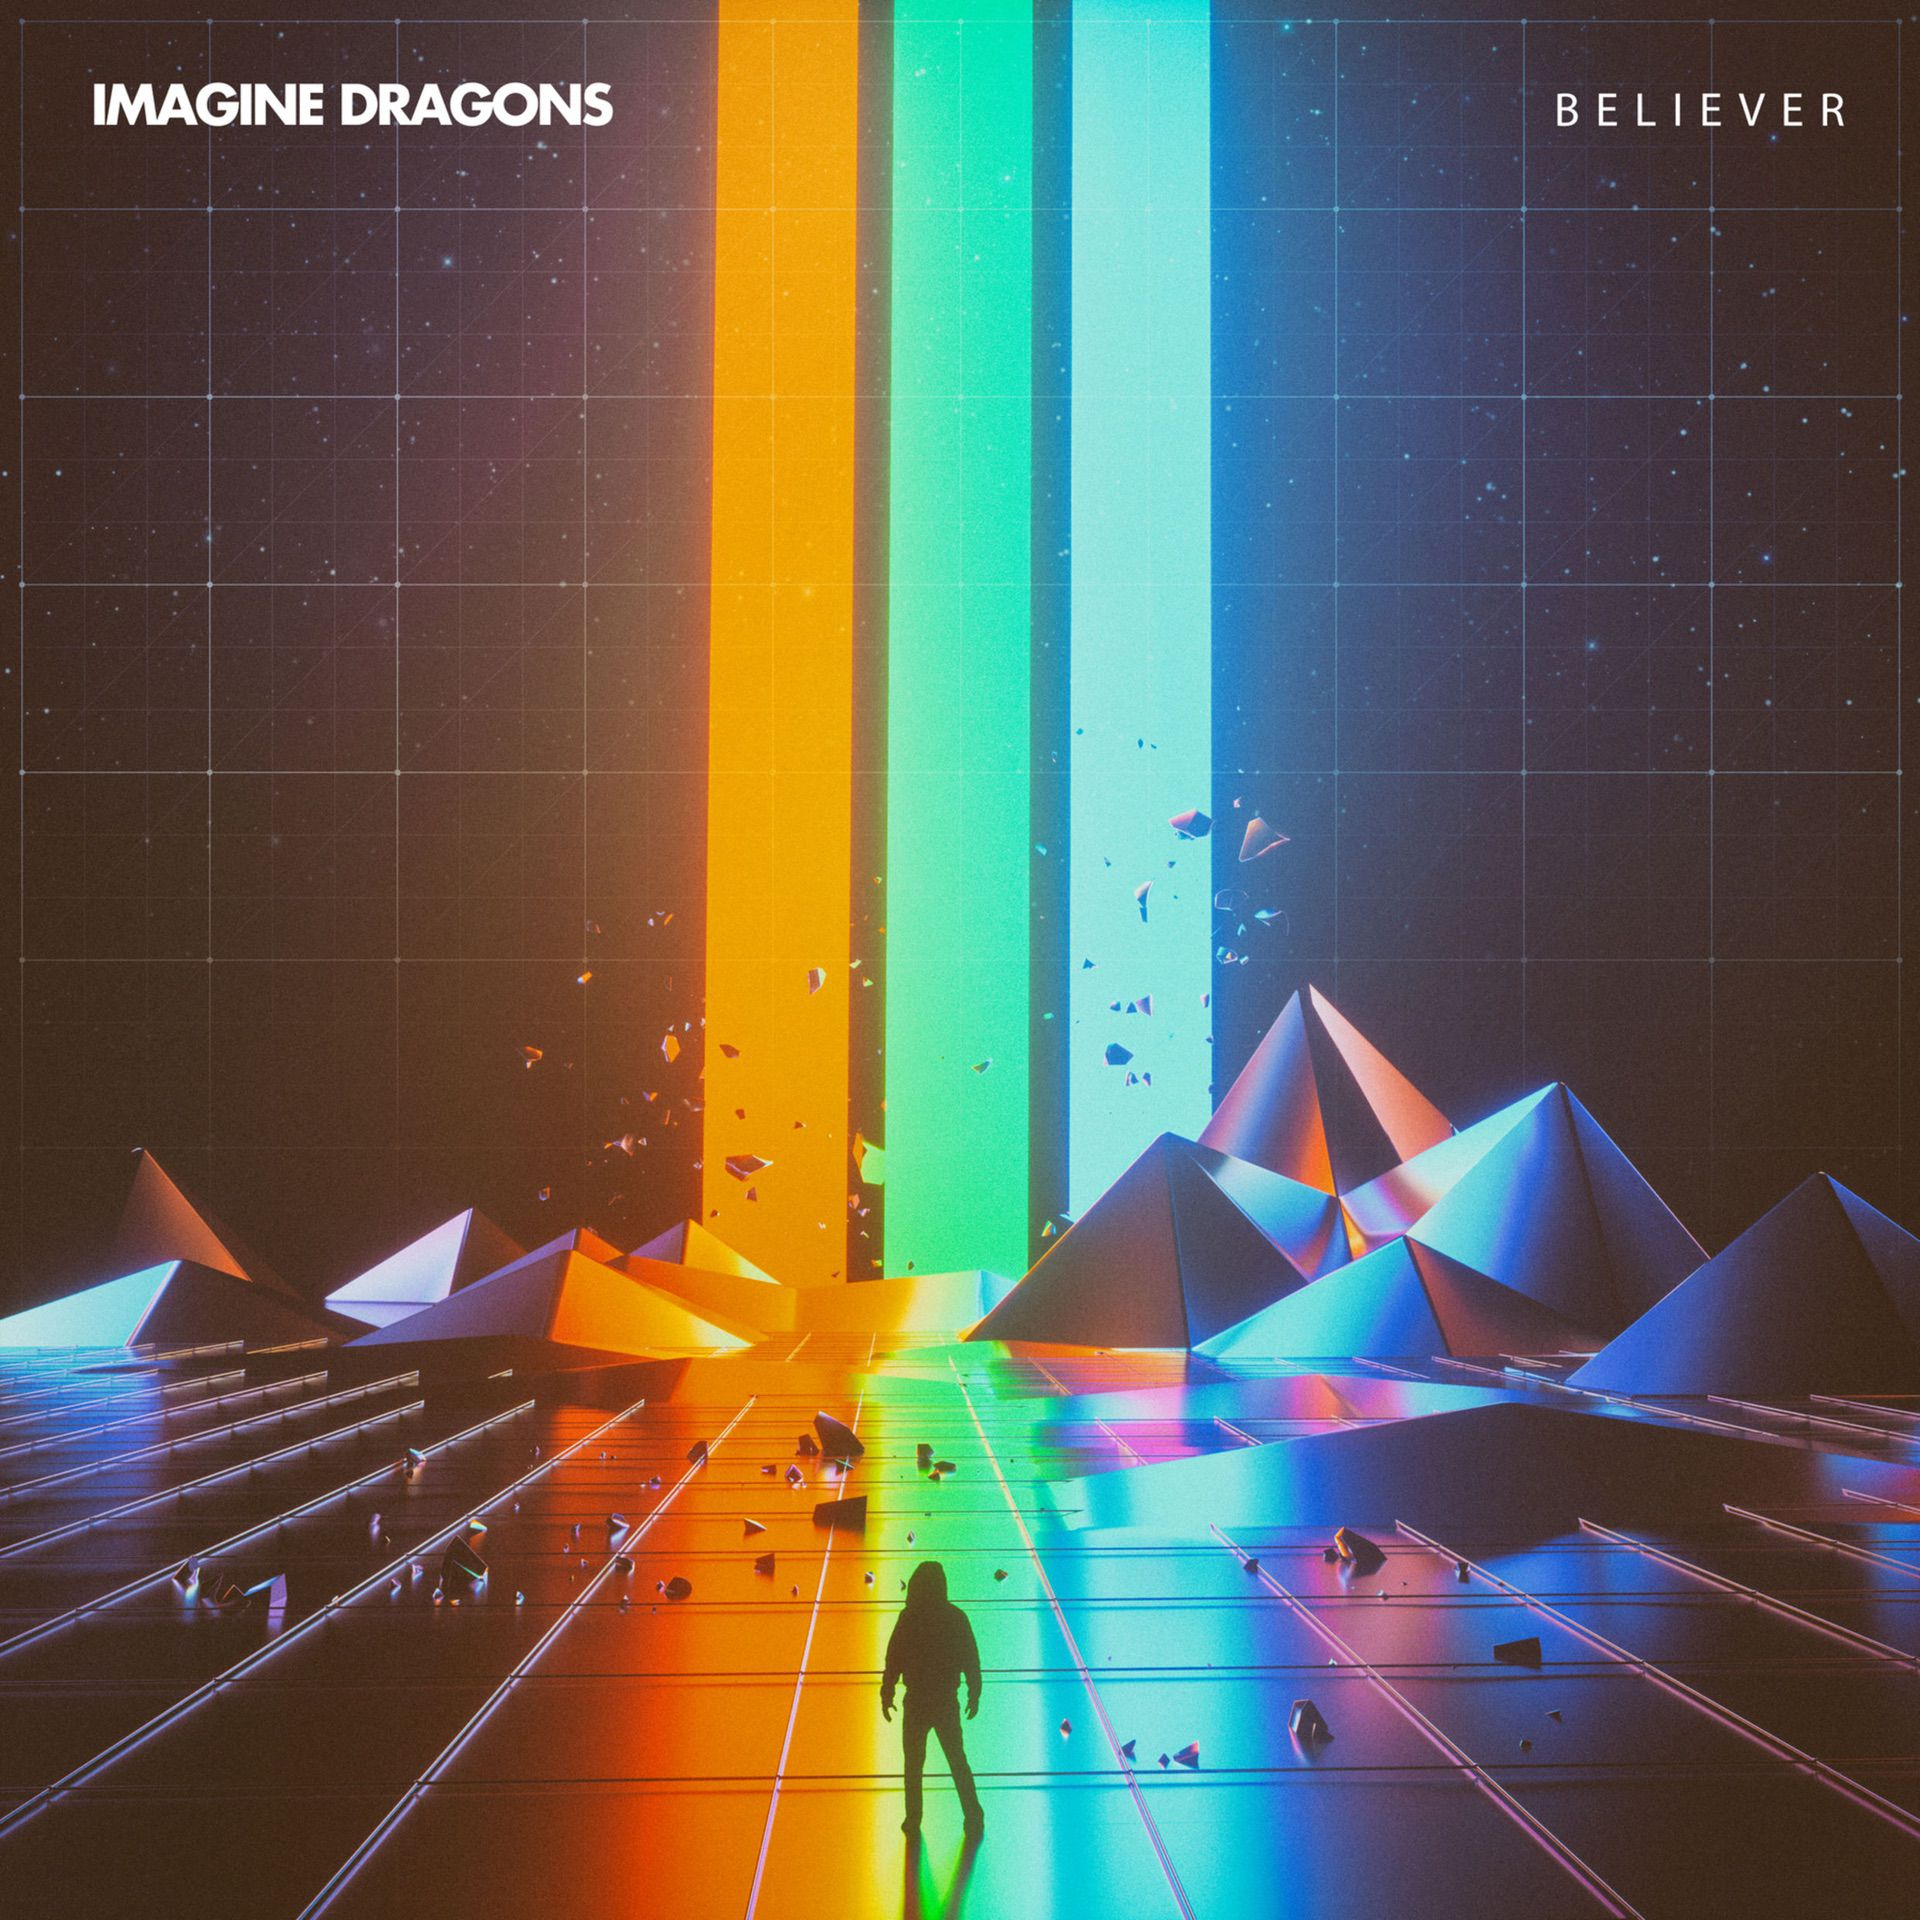 Imagine Dragons' Believer cover (2018) by Beeple - Pako Campo